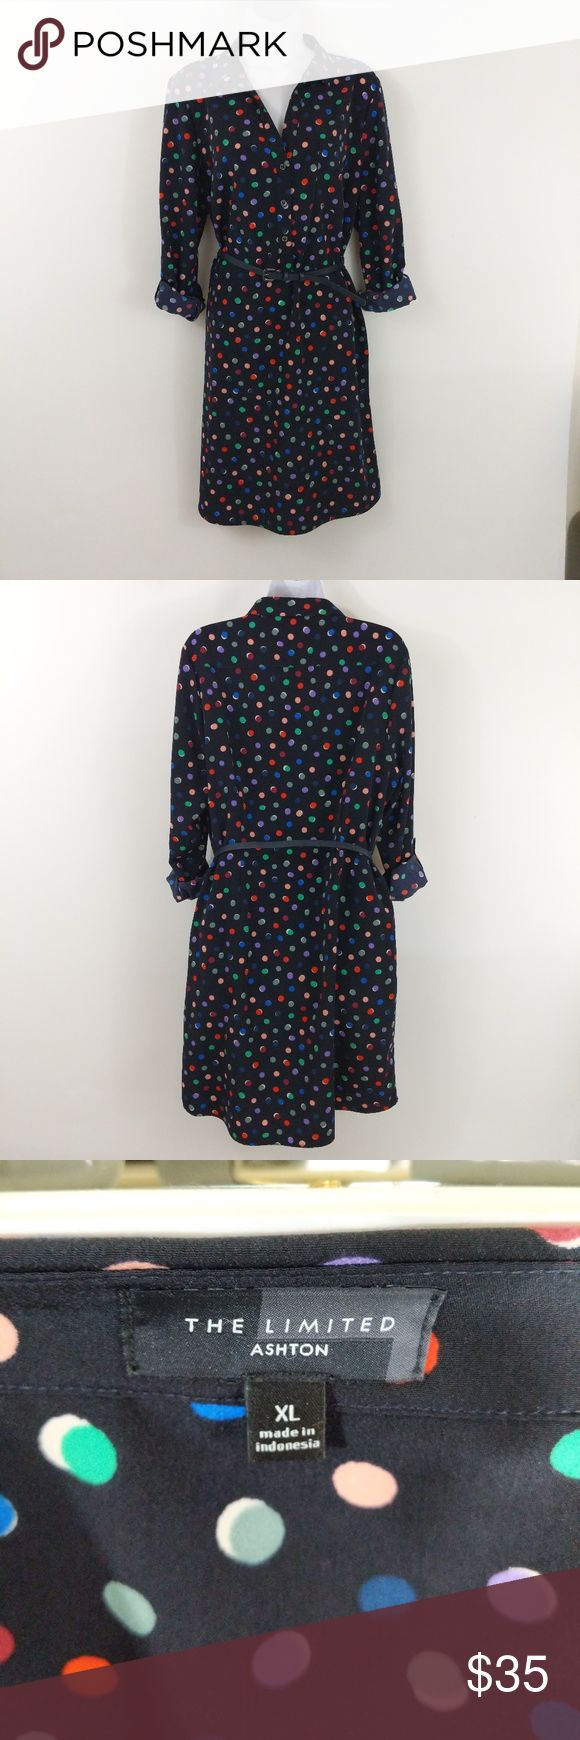 The Limited Shirtdress Ashton Navy W/Polkadots Check out the Limited's Ashton shirtdress, only worn once. Navy with multi colored polkadot pattern. Can be worn with or without a belt. Great for work.  Size information: Size XL  Condition Notes: Excellent used condition (like new).  We will consider all reasonable offers. Thanks for shopping with us! The Limited Dresses